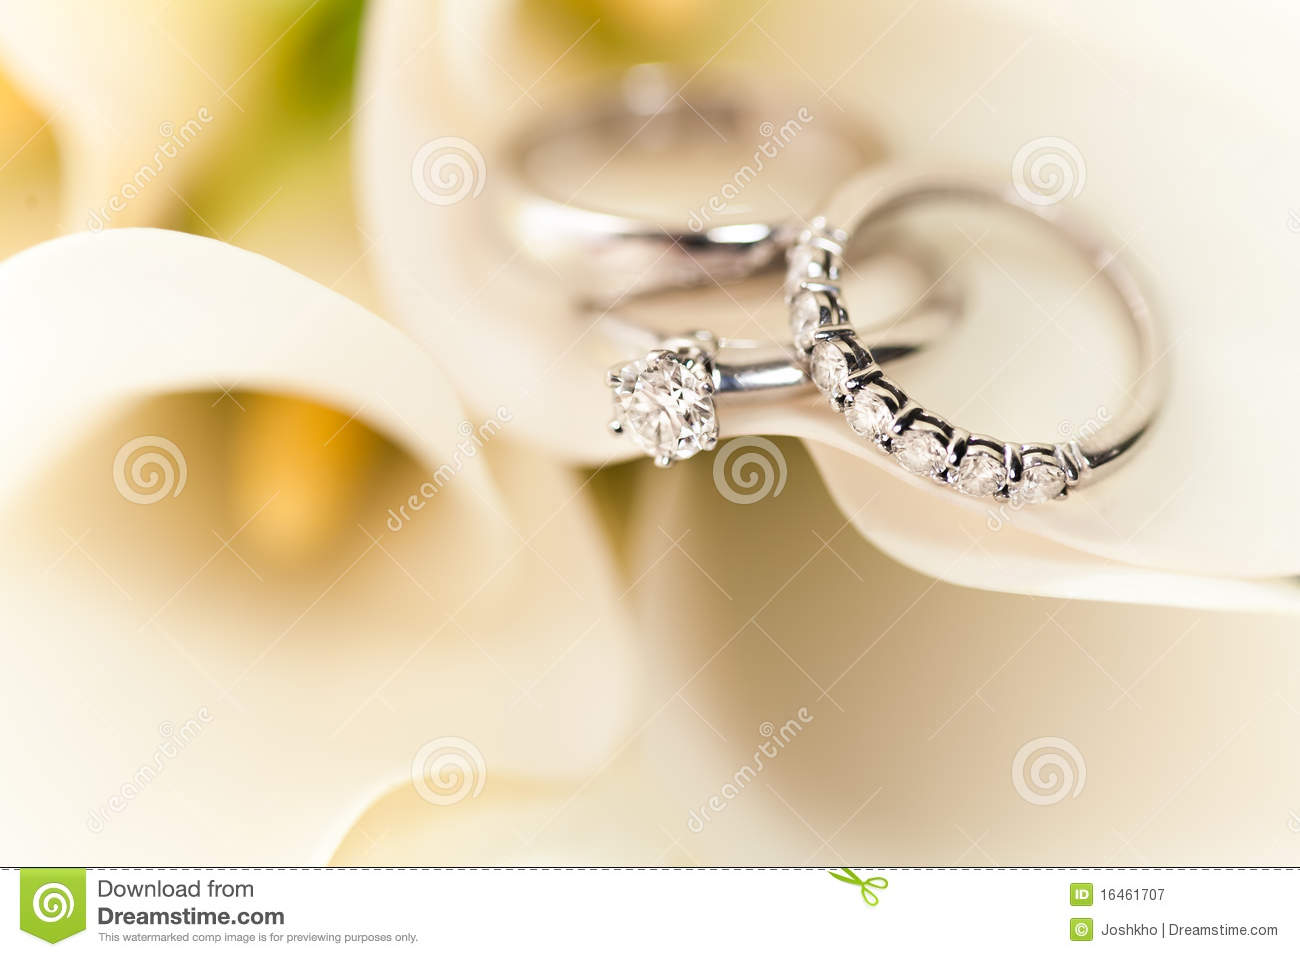 Wedding rings flowers  Wedding Rings Flowers Royalty Free Stock Photos - Image: 31510538